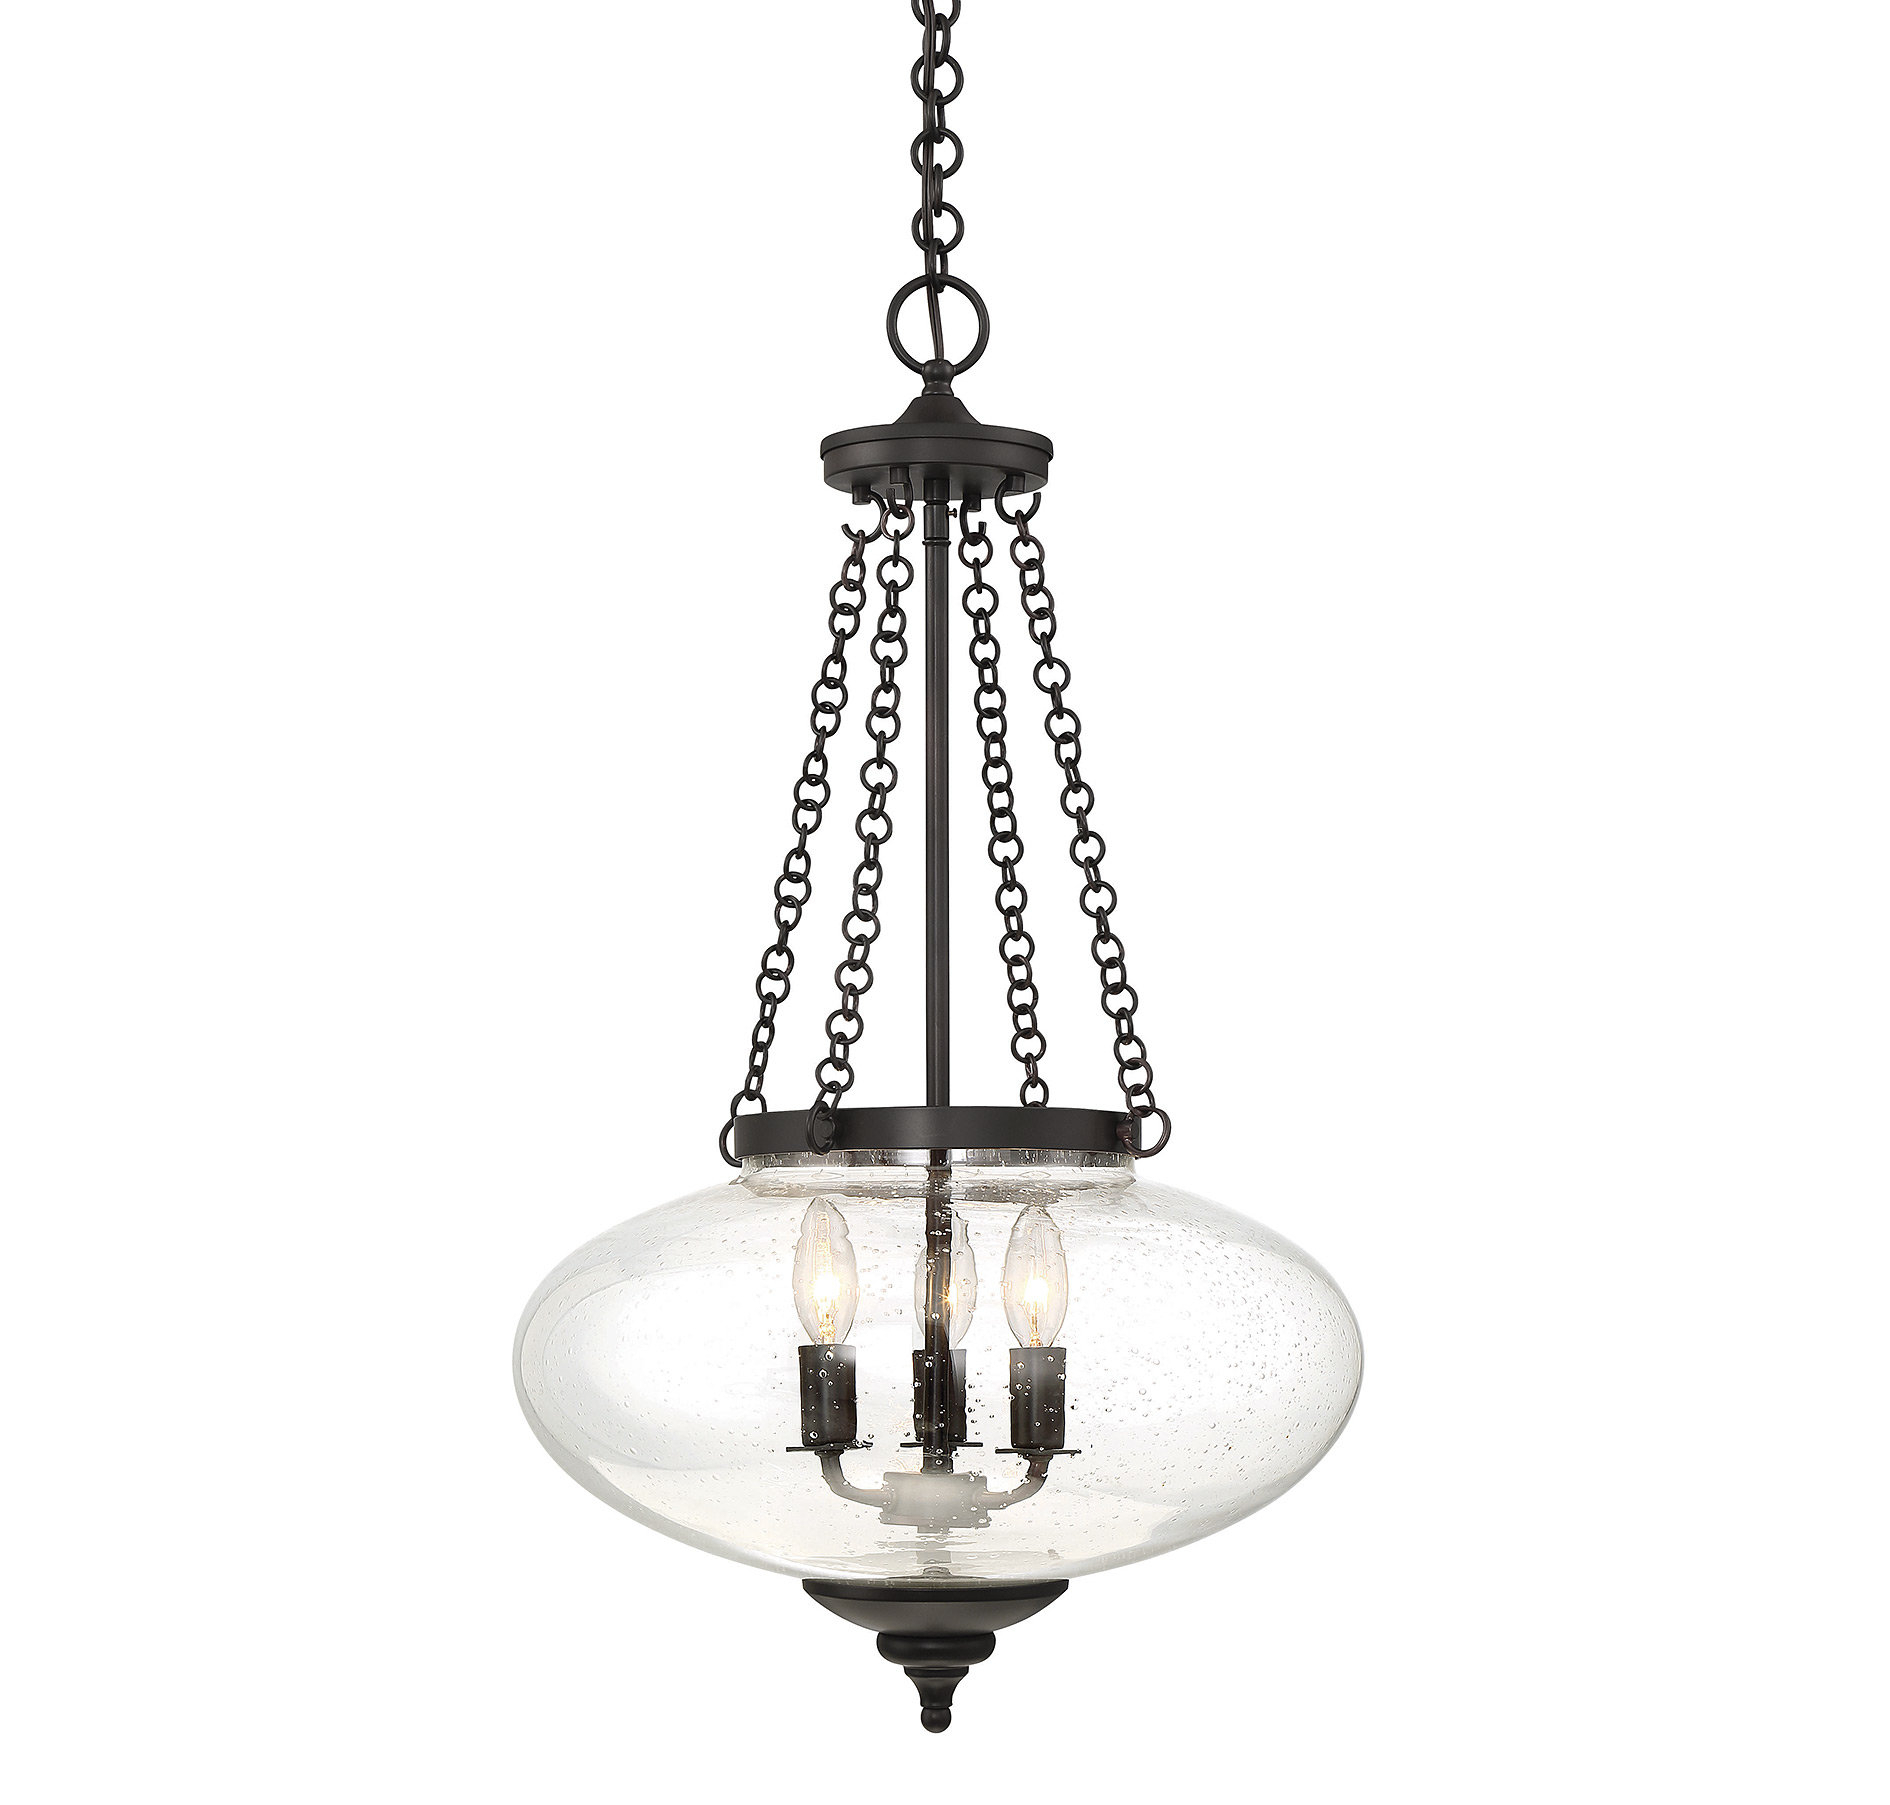 Lark Manor Fortunat 3 Light Single Teardrop Pendant In Van Horne 3 Light Single Teardrop Pendants (View 5 of 30)